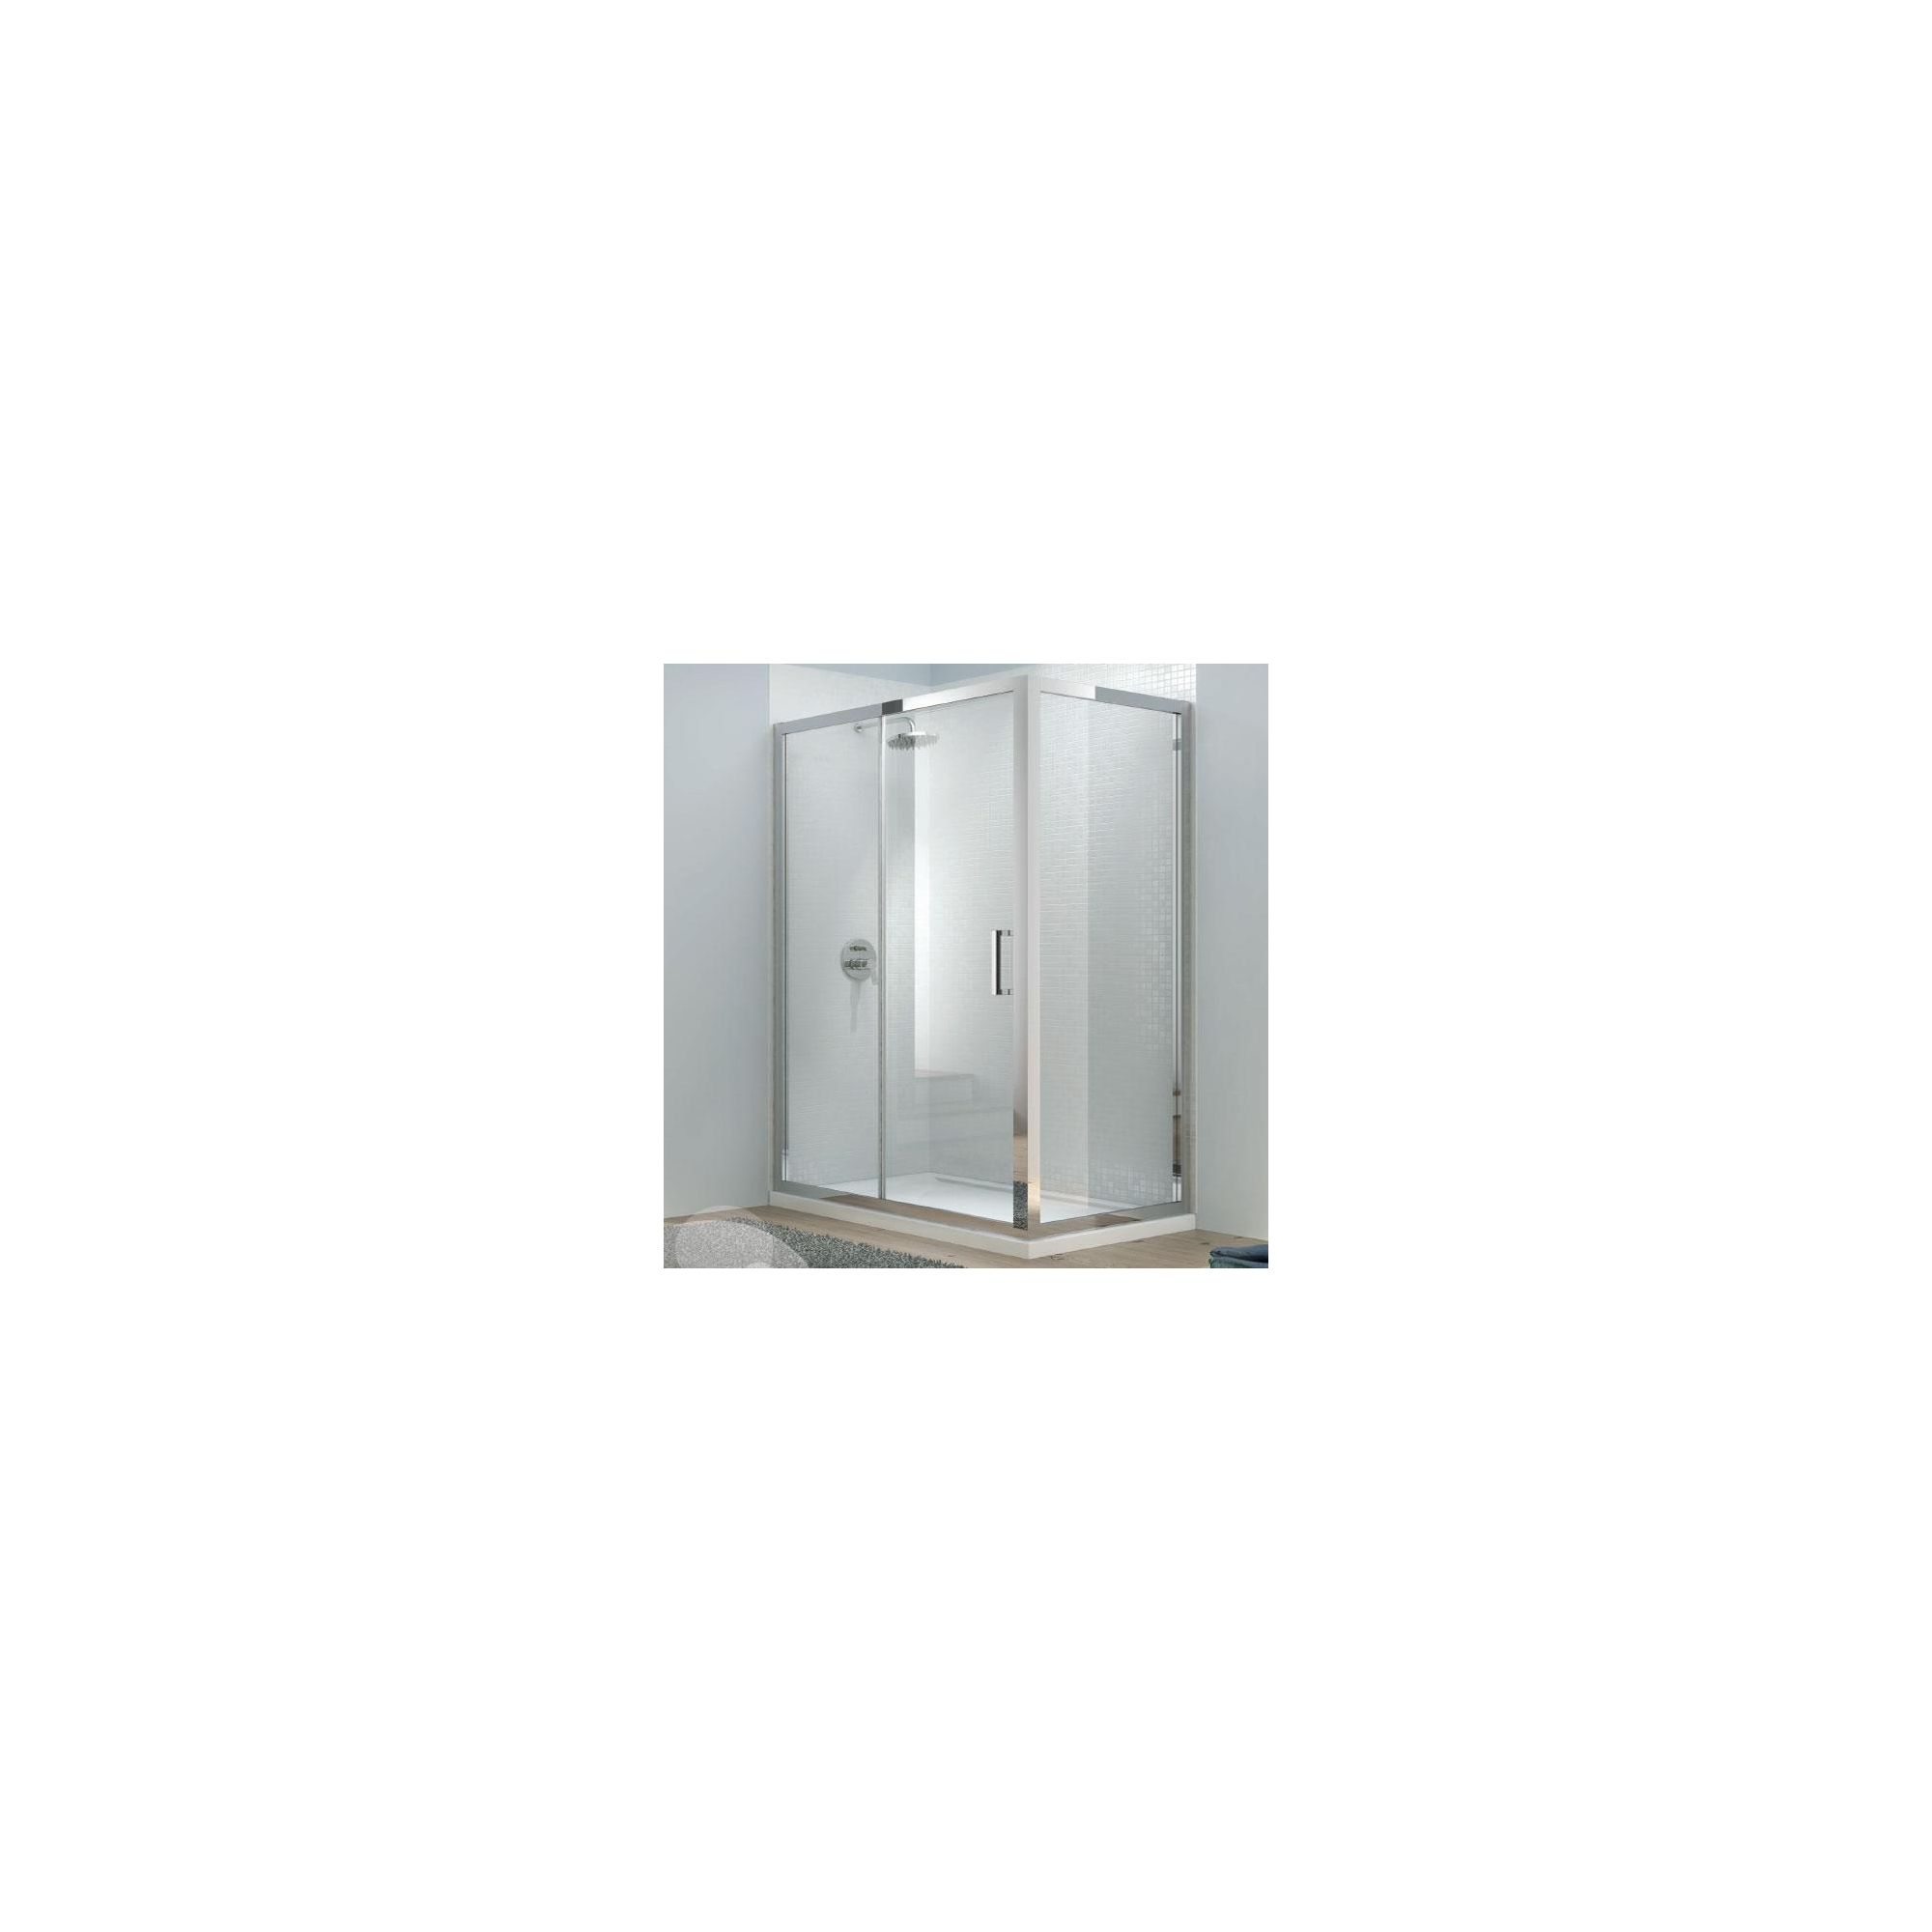 Merlyn Vivid Eight Sliding Door Shower Enclosure, 1700mm x 800mm, Low Profile Tray, 8mm Glass at Tesco Direct